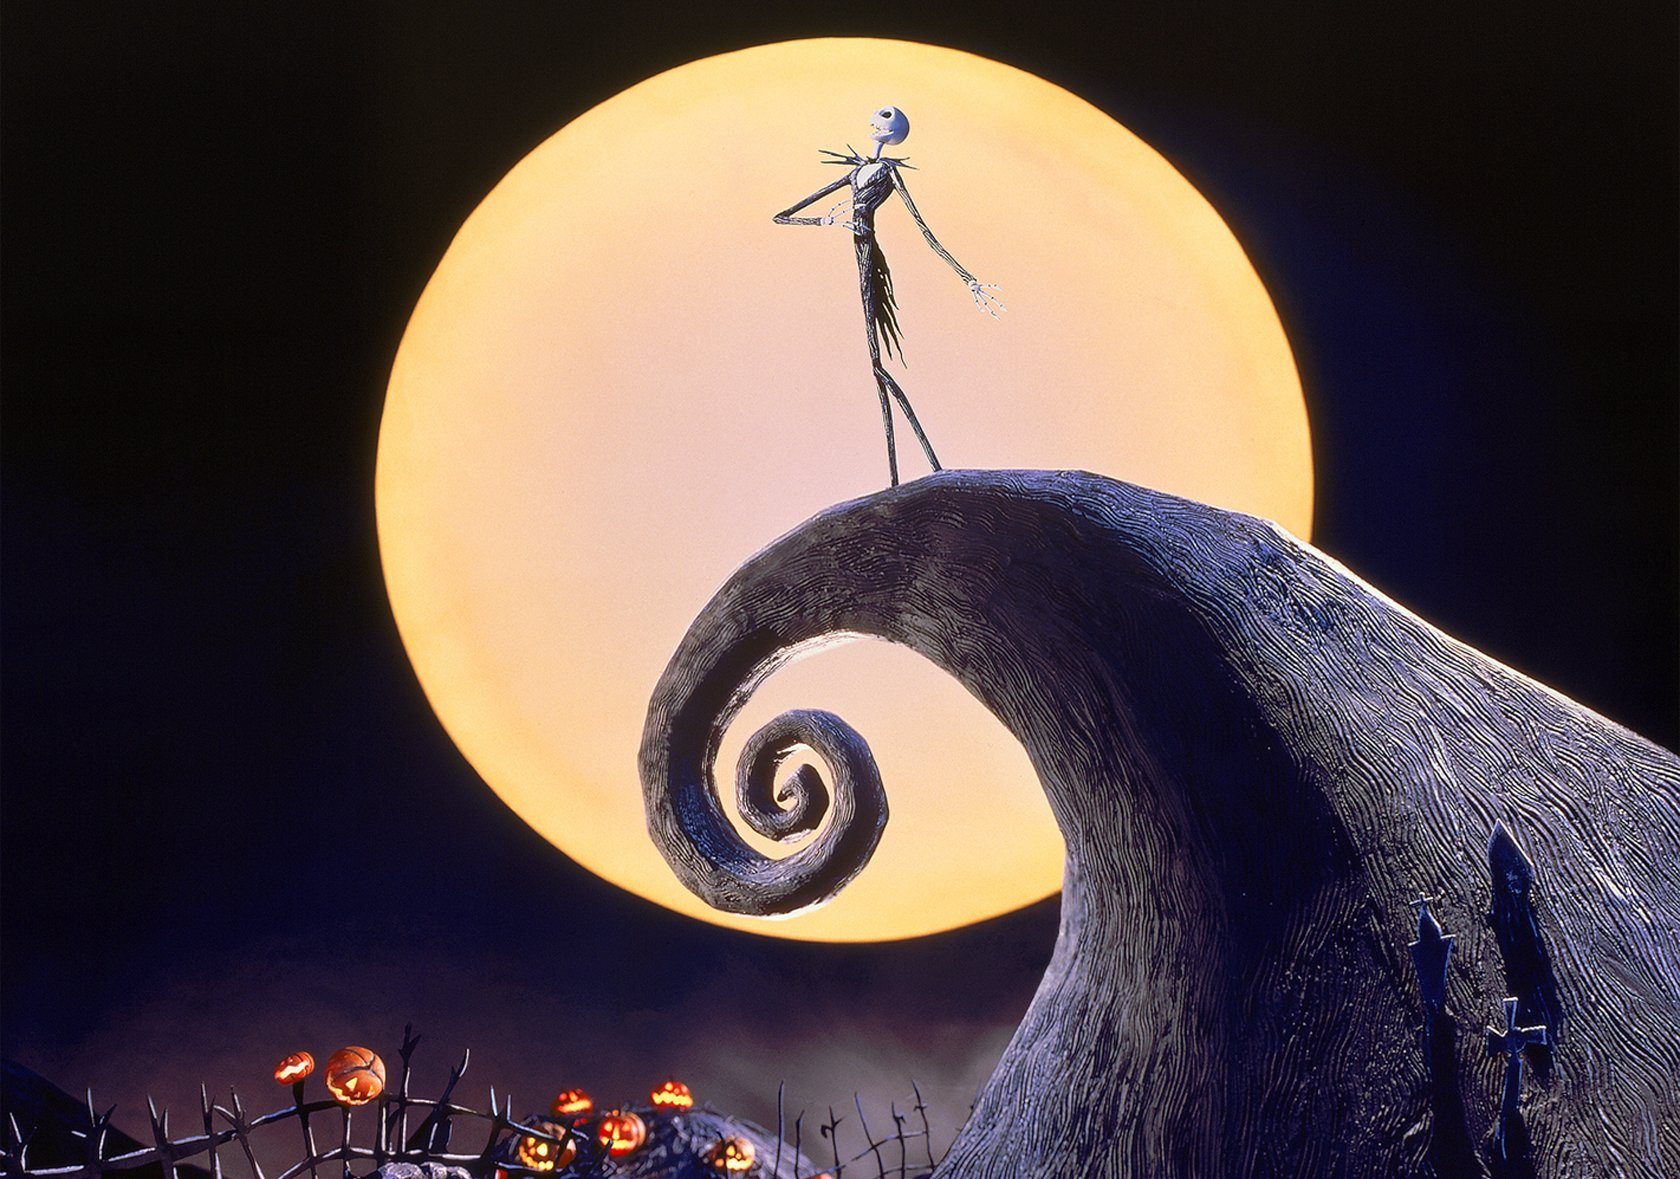 Nightmare Before Christmas Hd Wallpaper.33 The Nightmare Before Christmas Hd Wallpapers Background